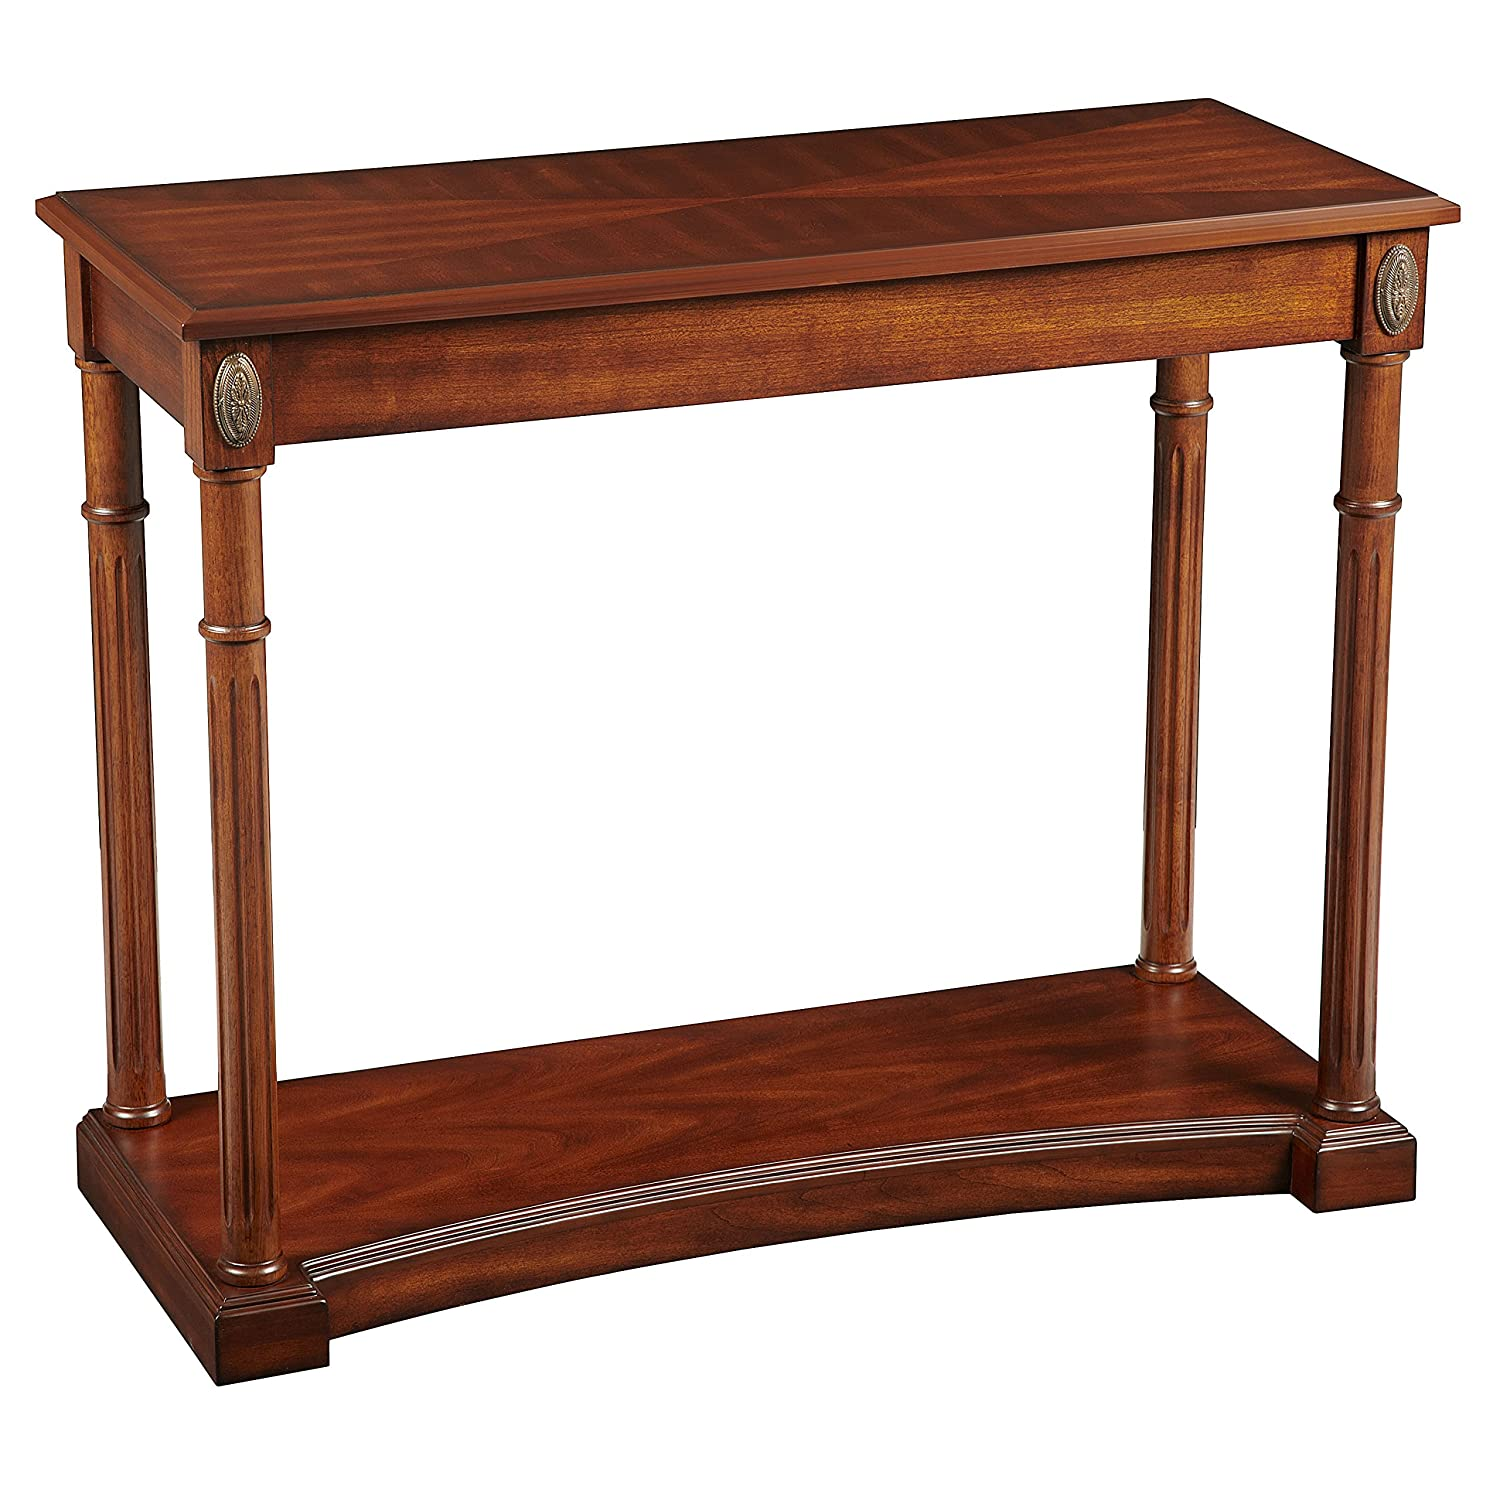 Amazon Bombay pany Athena Console Table Antique Cherry